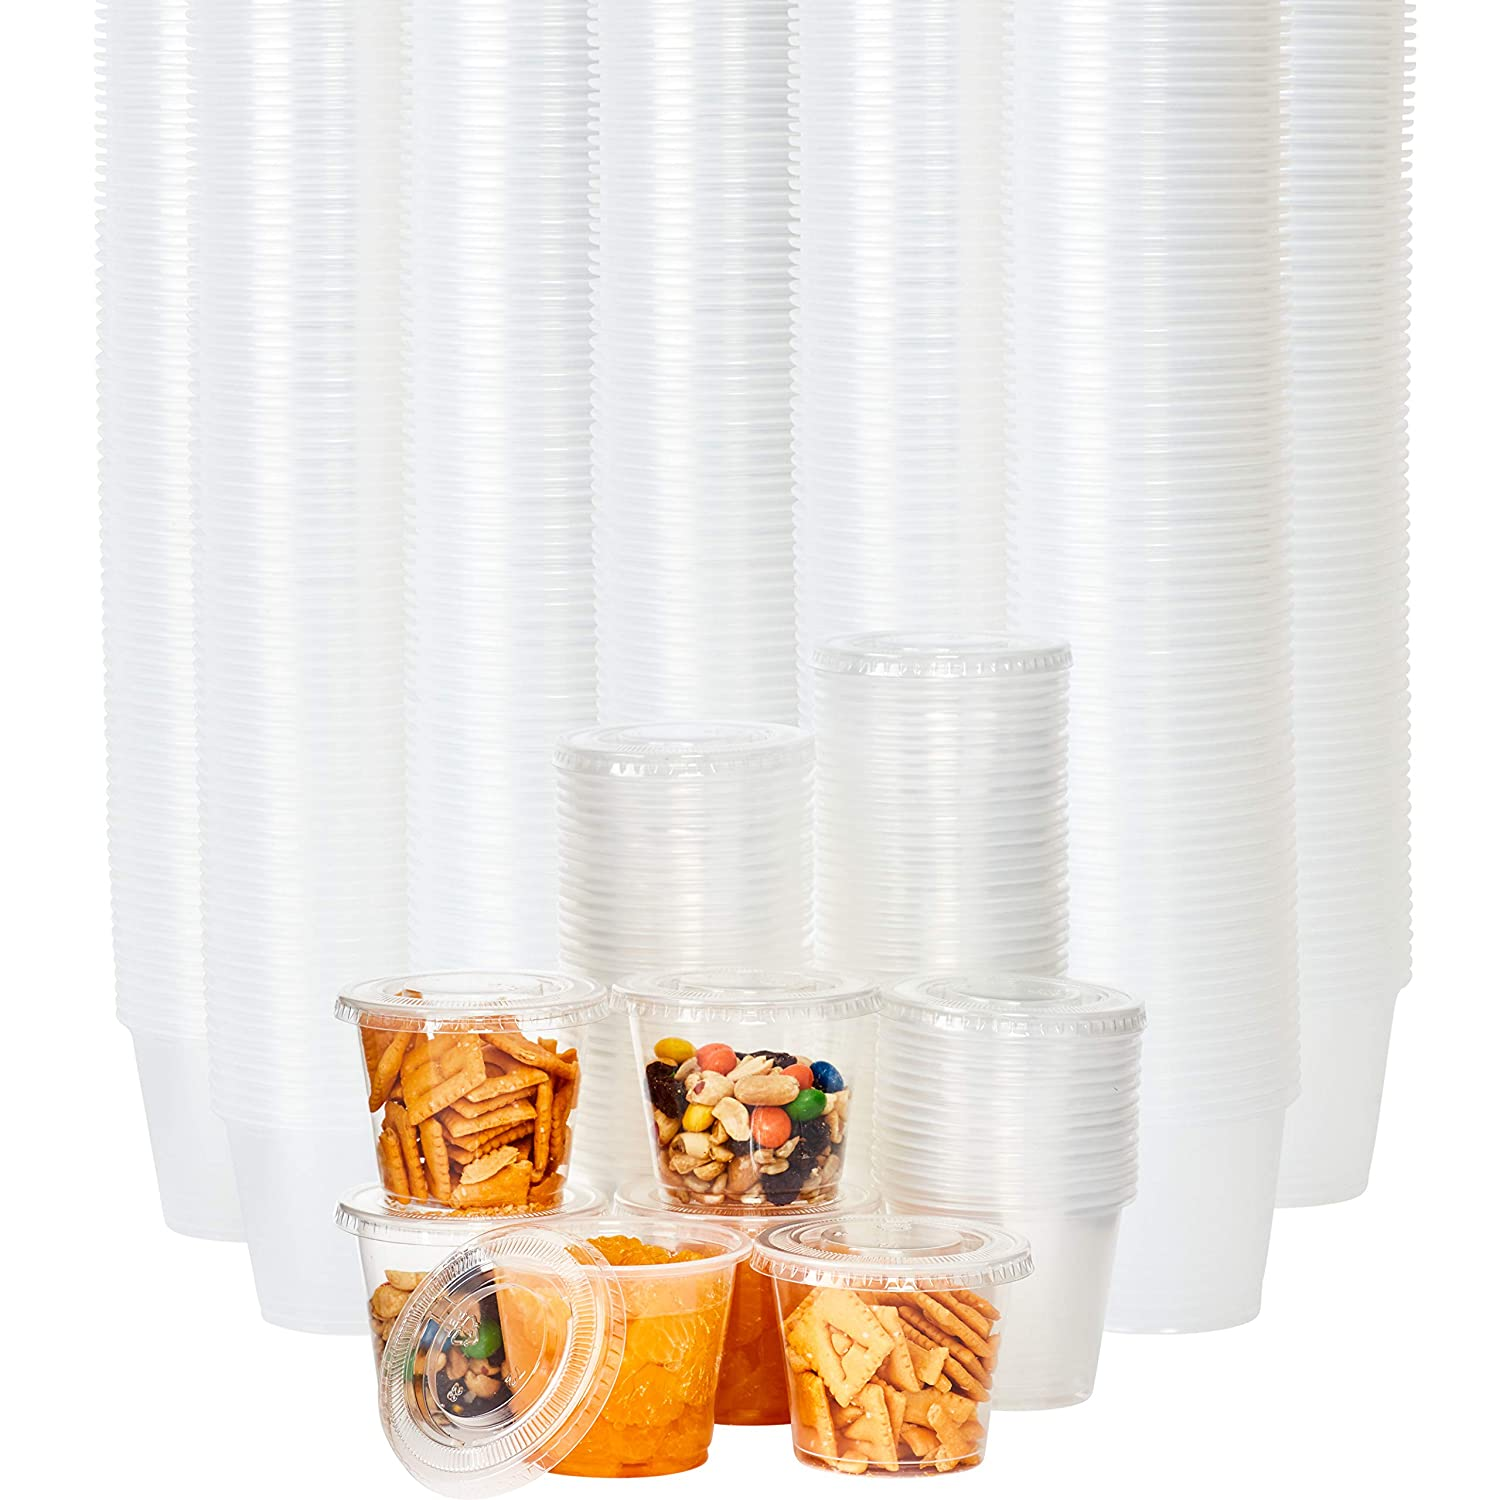 Leakproof BPA Free 5.5oz Souffle Cups and OFFicial store 500ct. Low price Lids Stackable